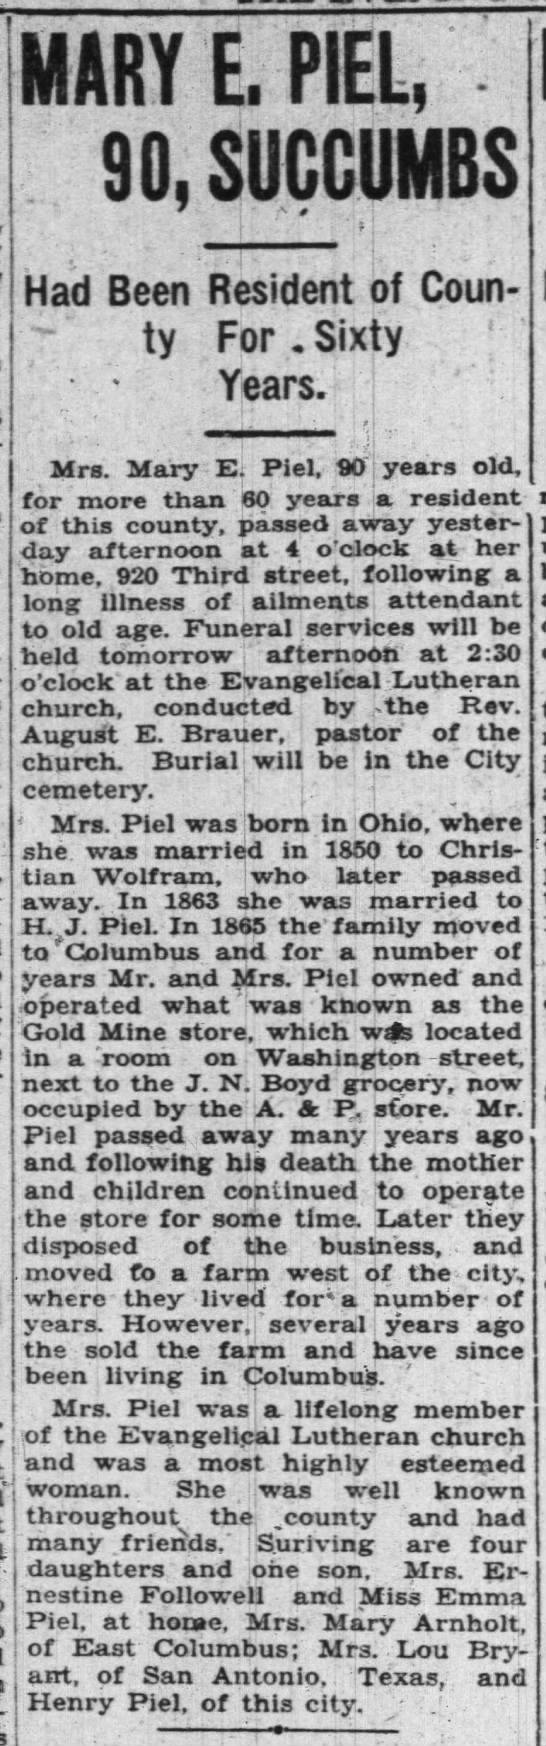 Mary Piel, mother of Ernestine Followell, obit